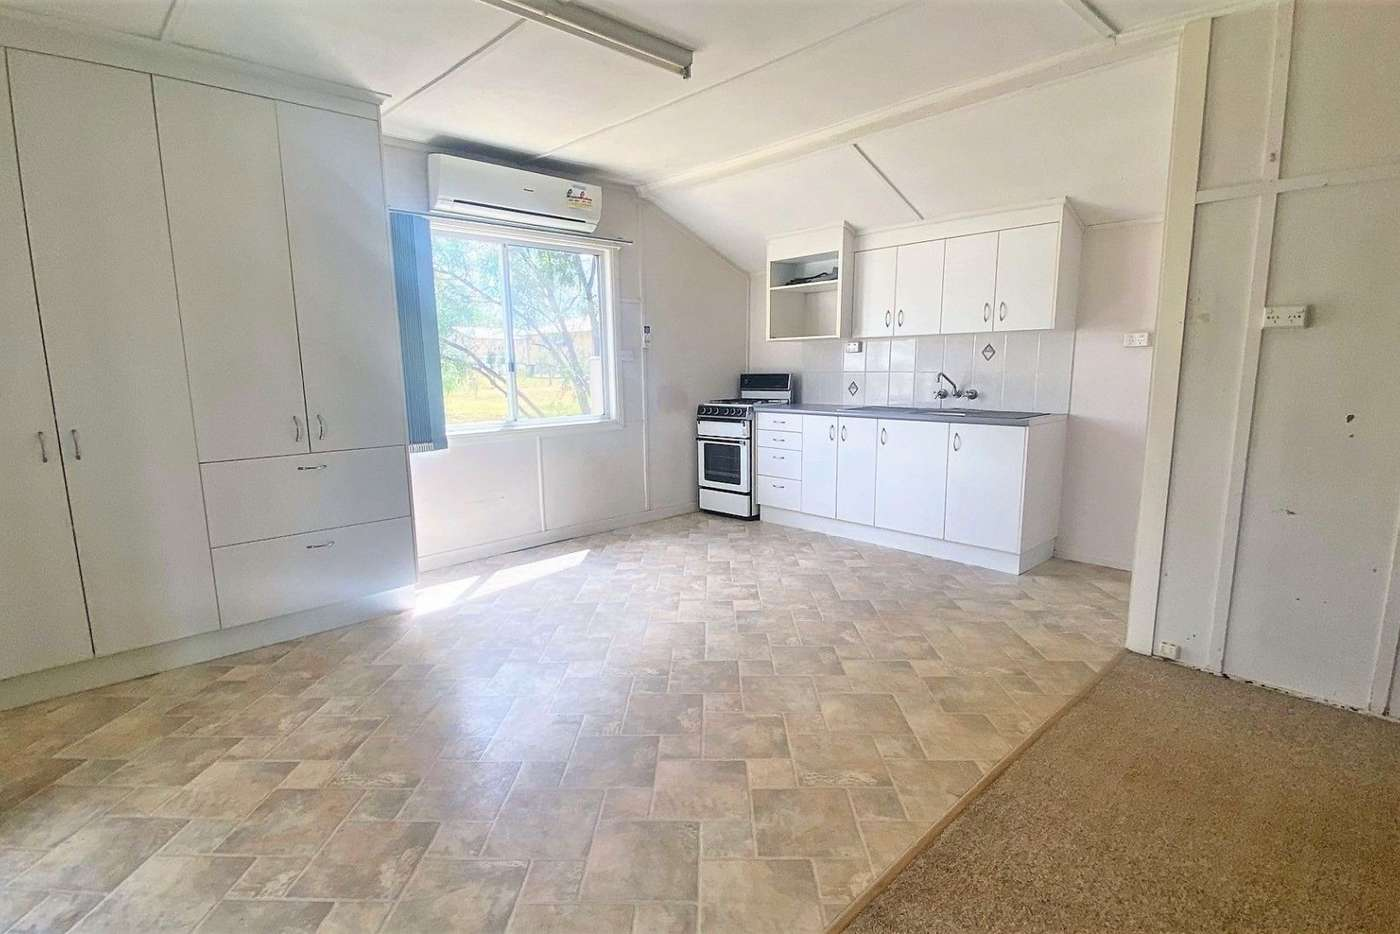 Sixth view of Homely house listing, 10 Helena Street, Chinchilla QLD 4413